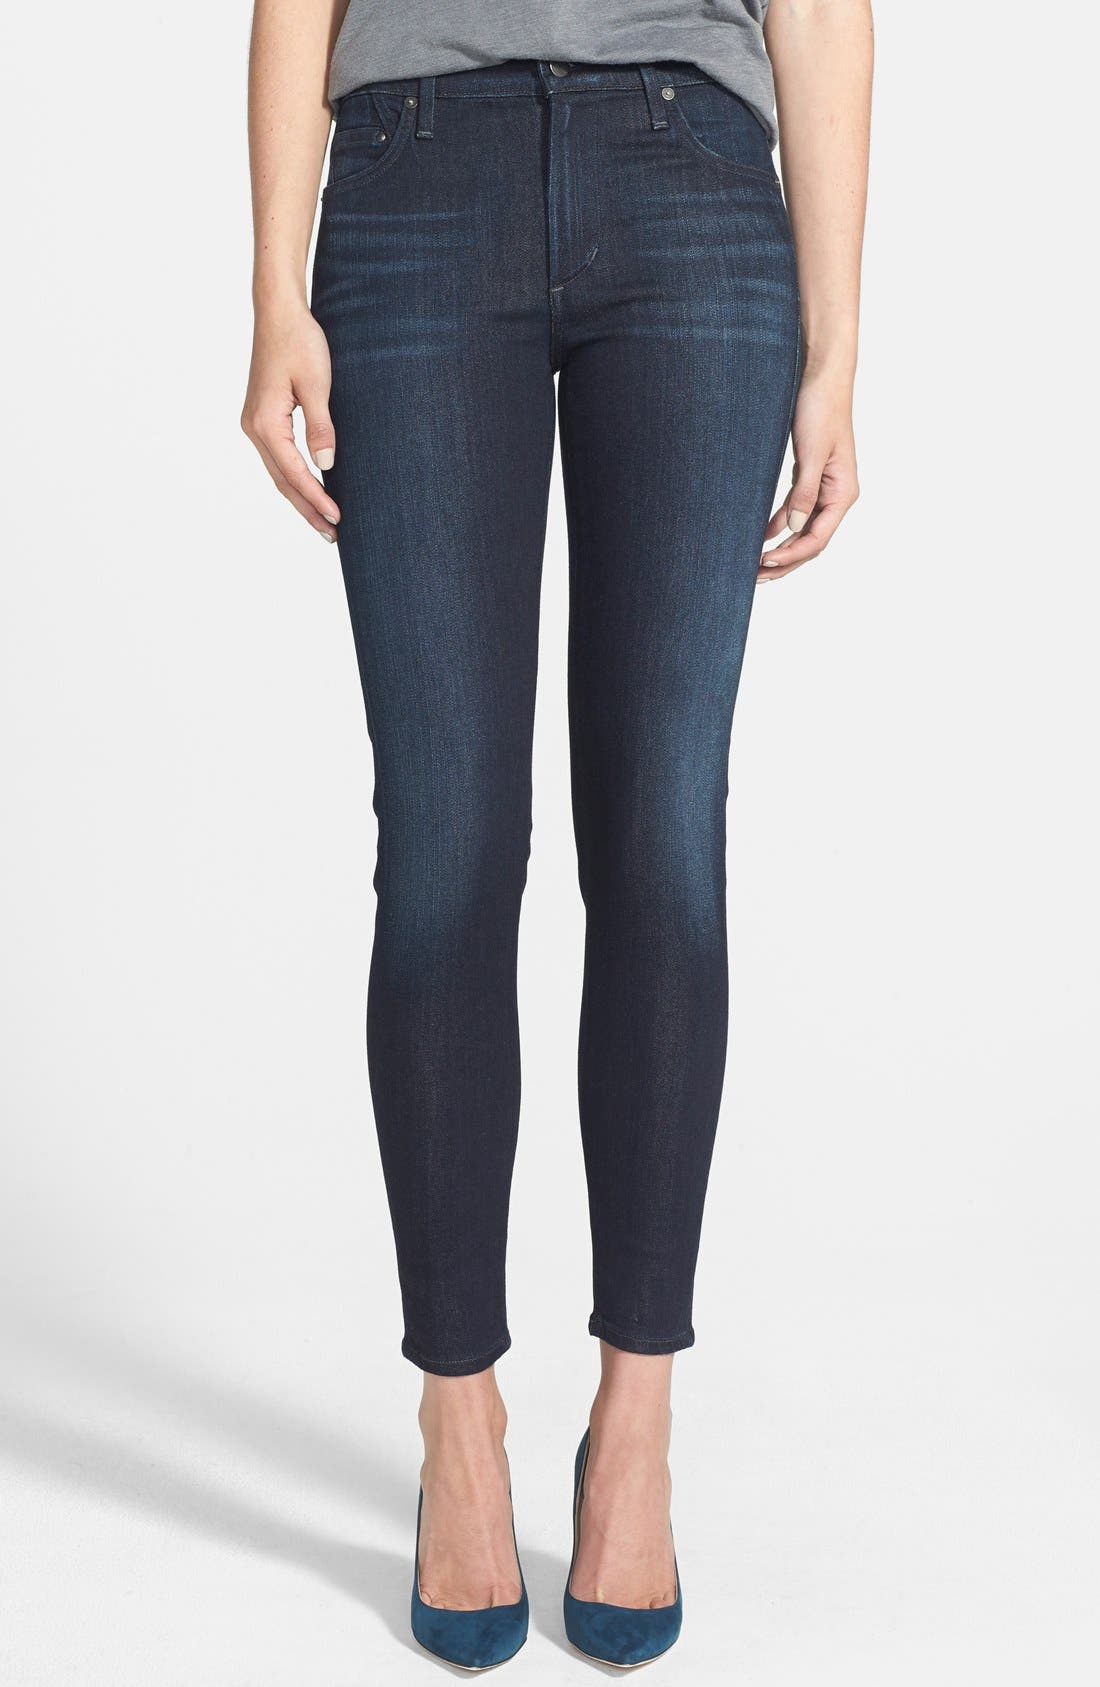 Alternate Image 1 Selected - Citizens of Humanity 'Rocket' High Rise Skinny Jeans (Space) (Petite)